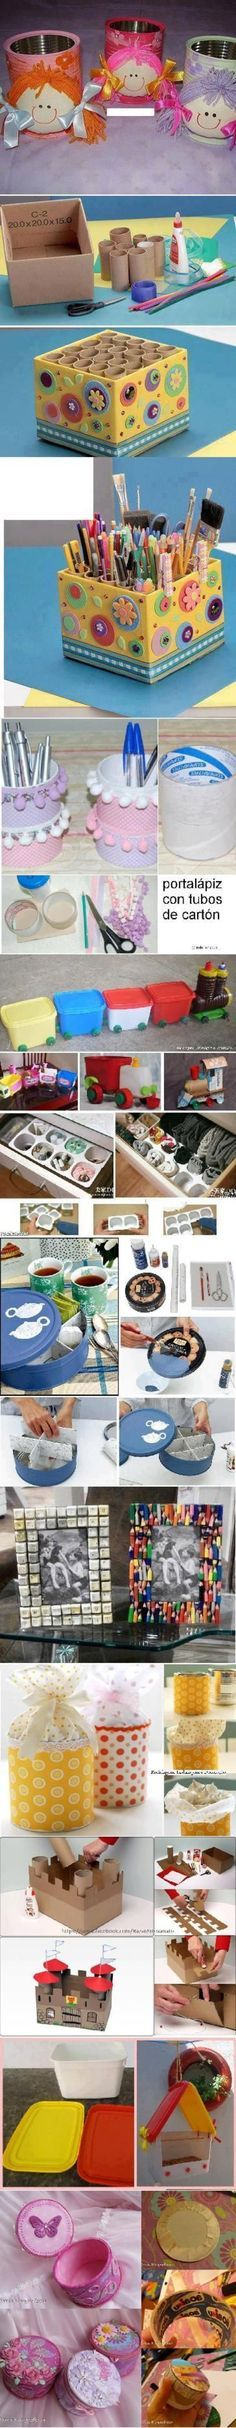 1000 Images About Craft Ideas For The House On Pinterest